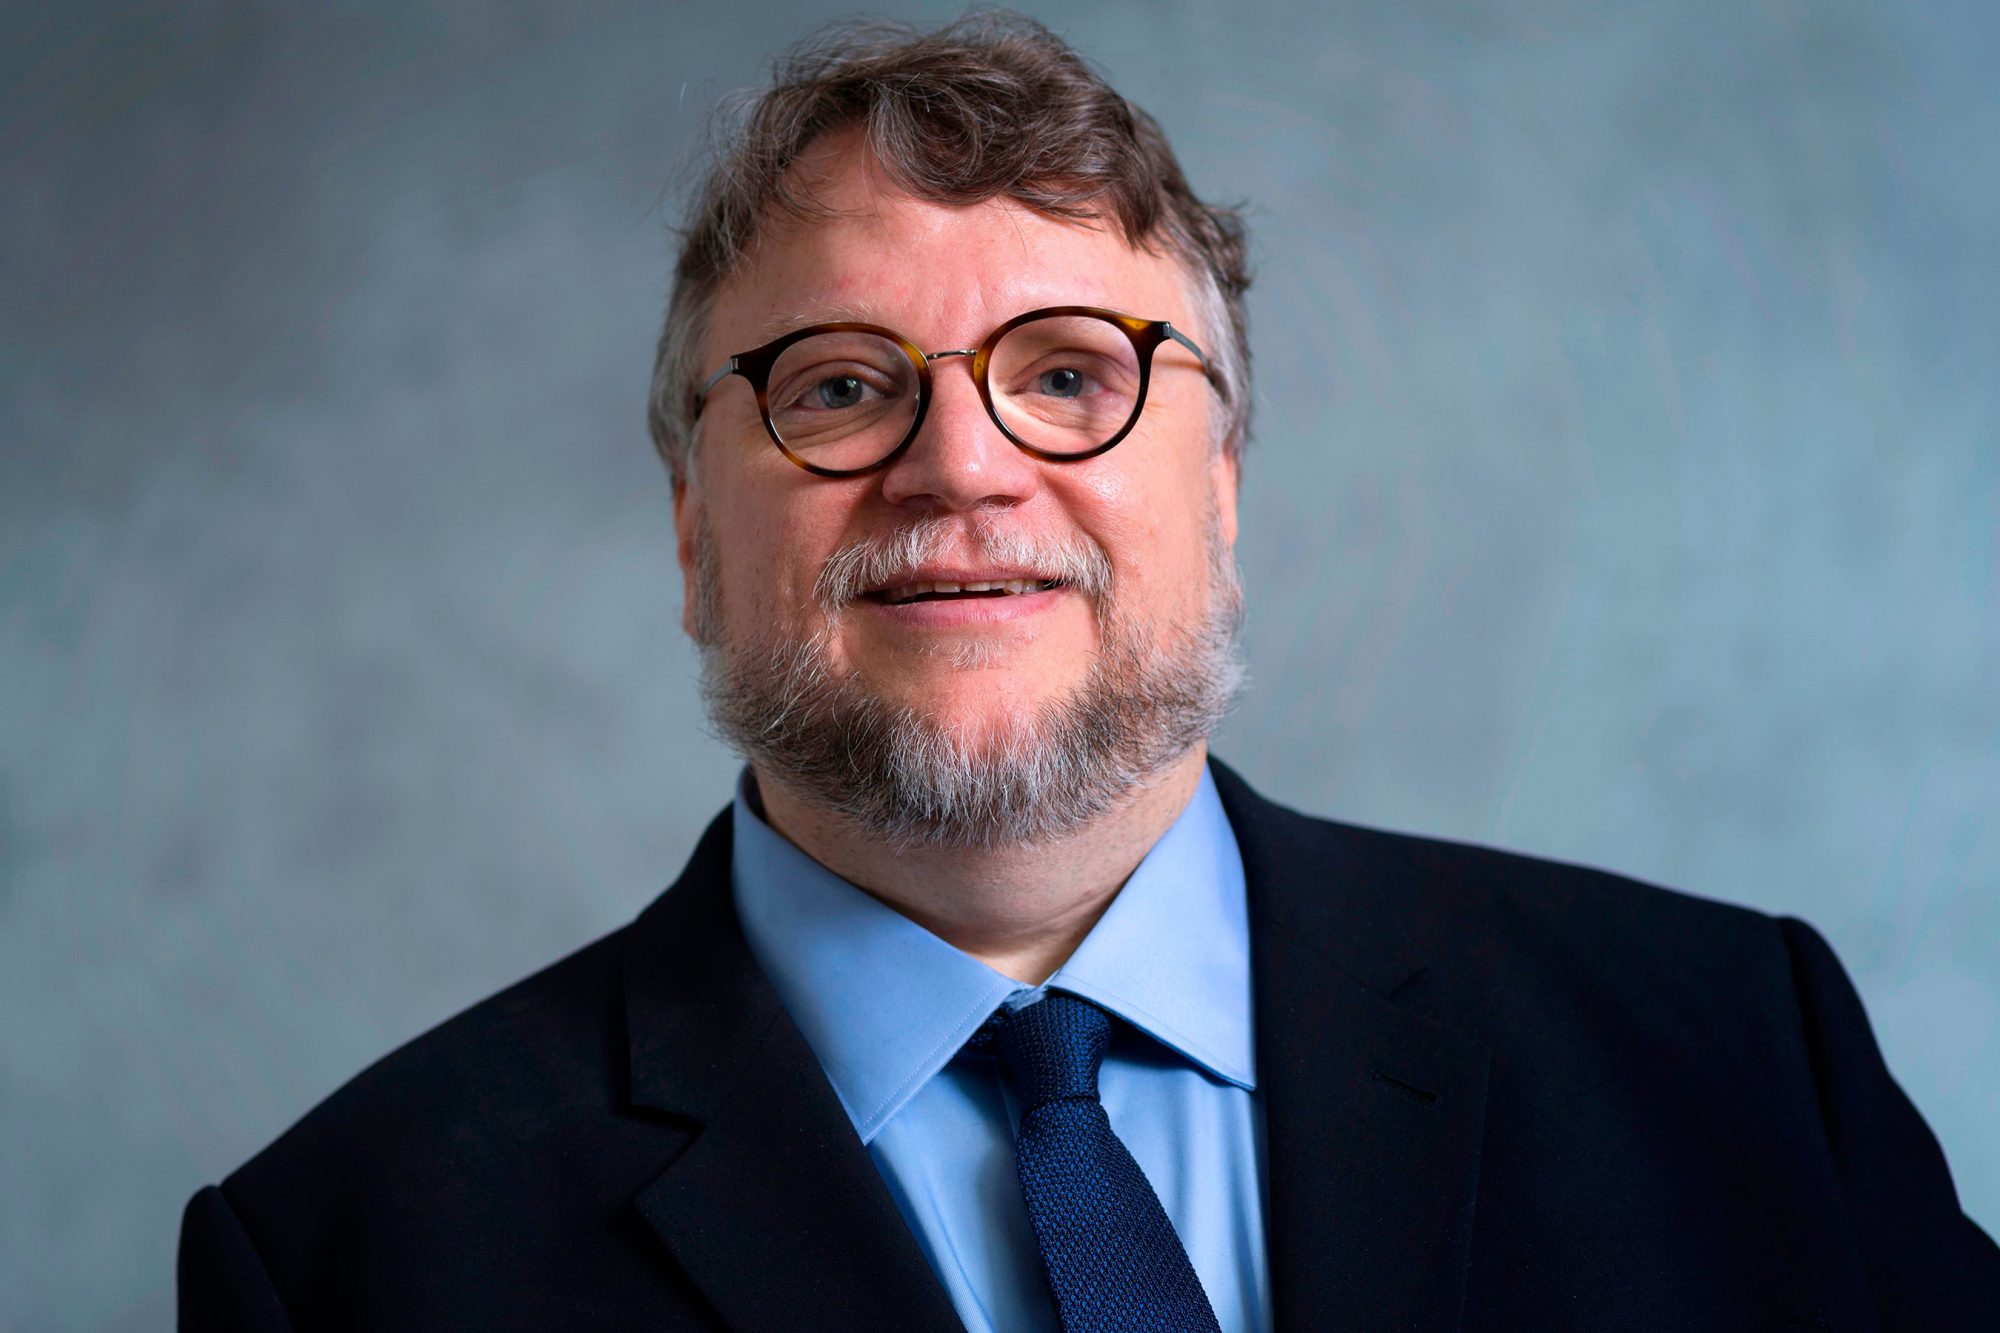 US-ENTERTAINMENT-STUDIO-PORTRAIT-DEL TORO